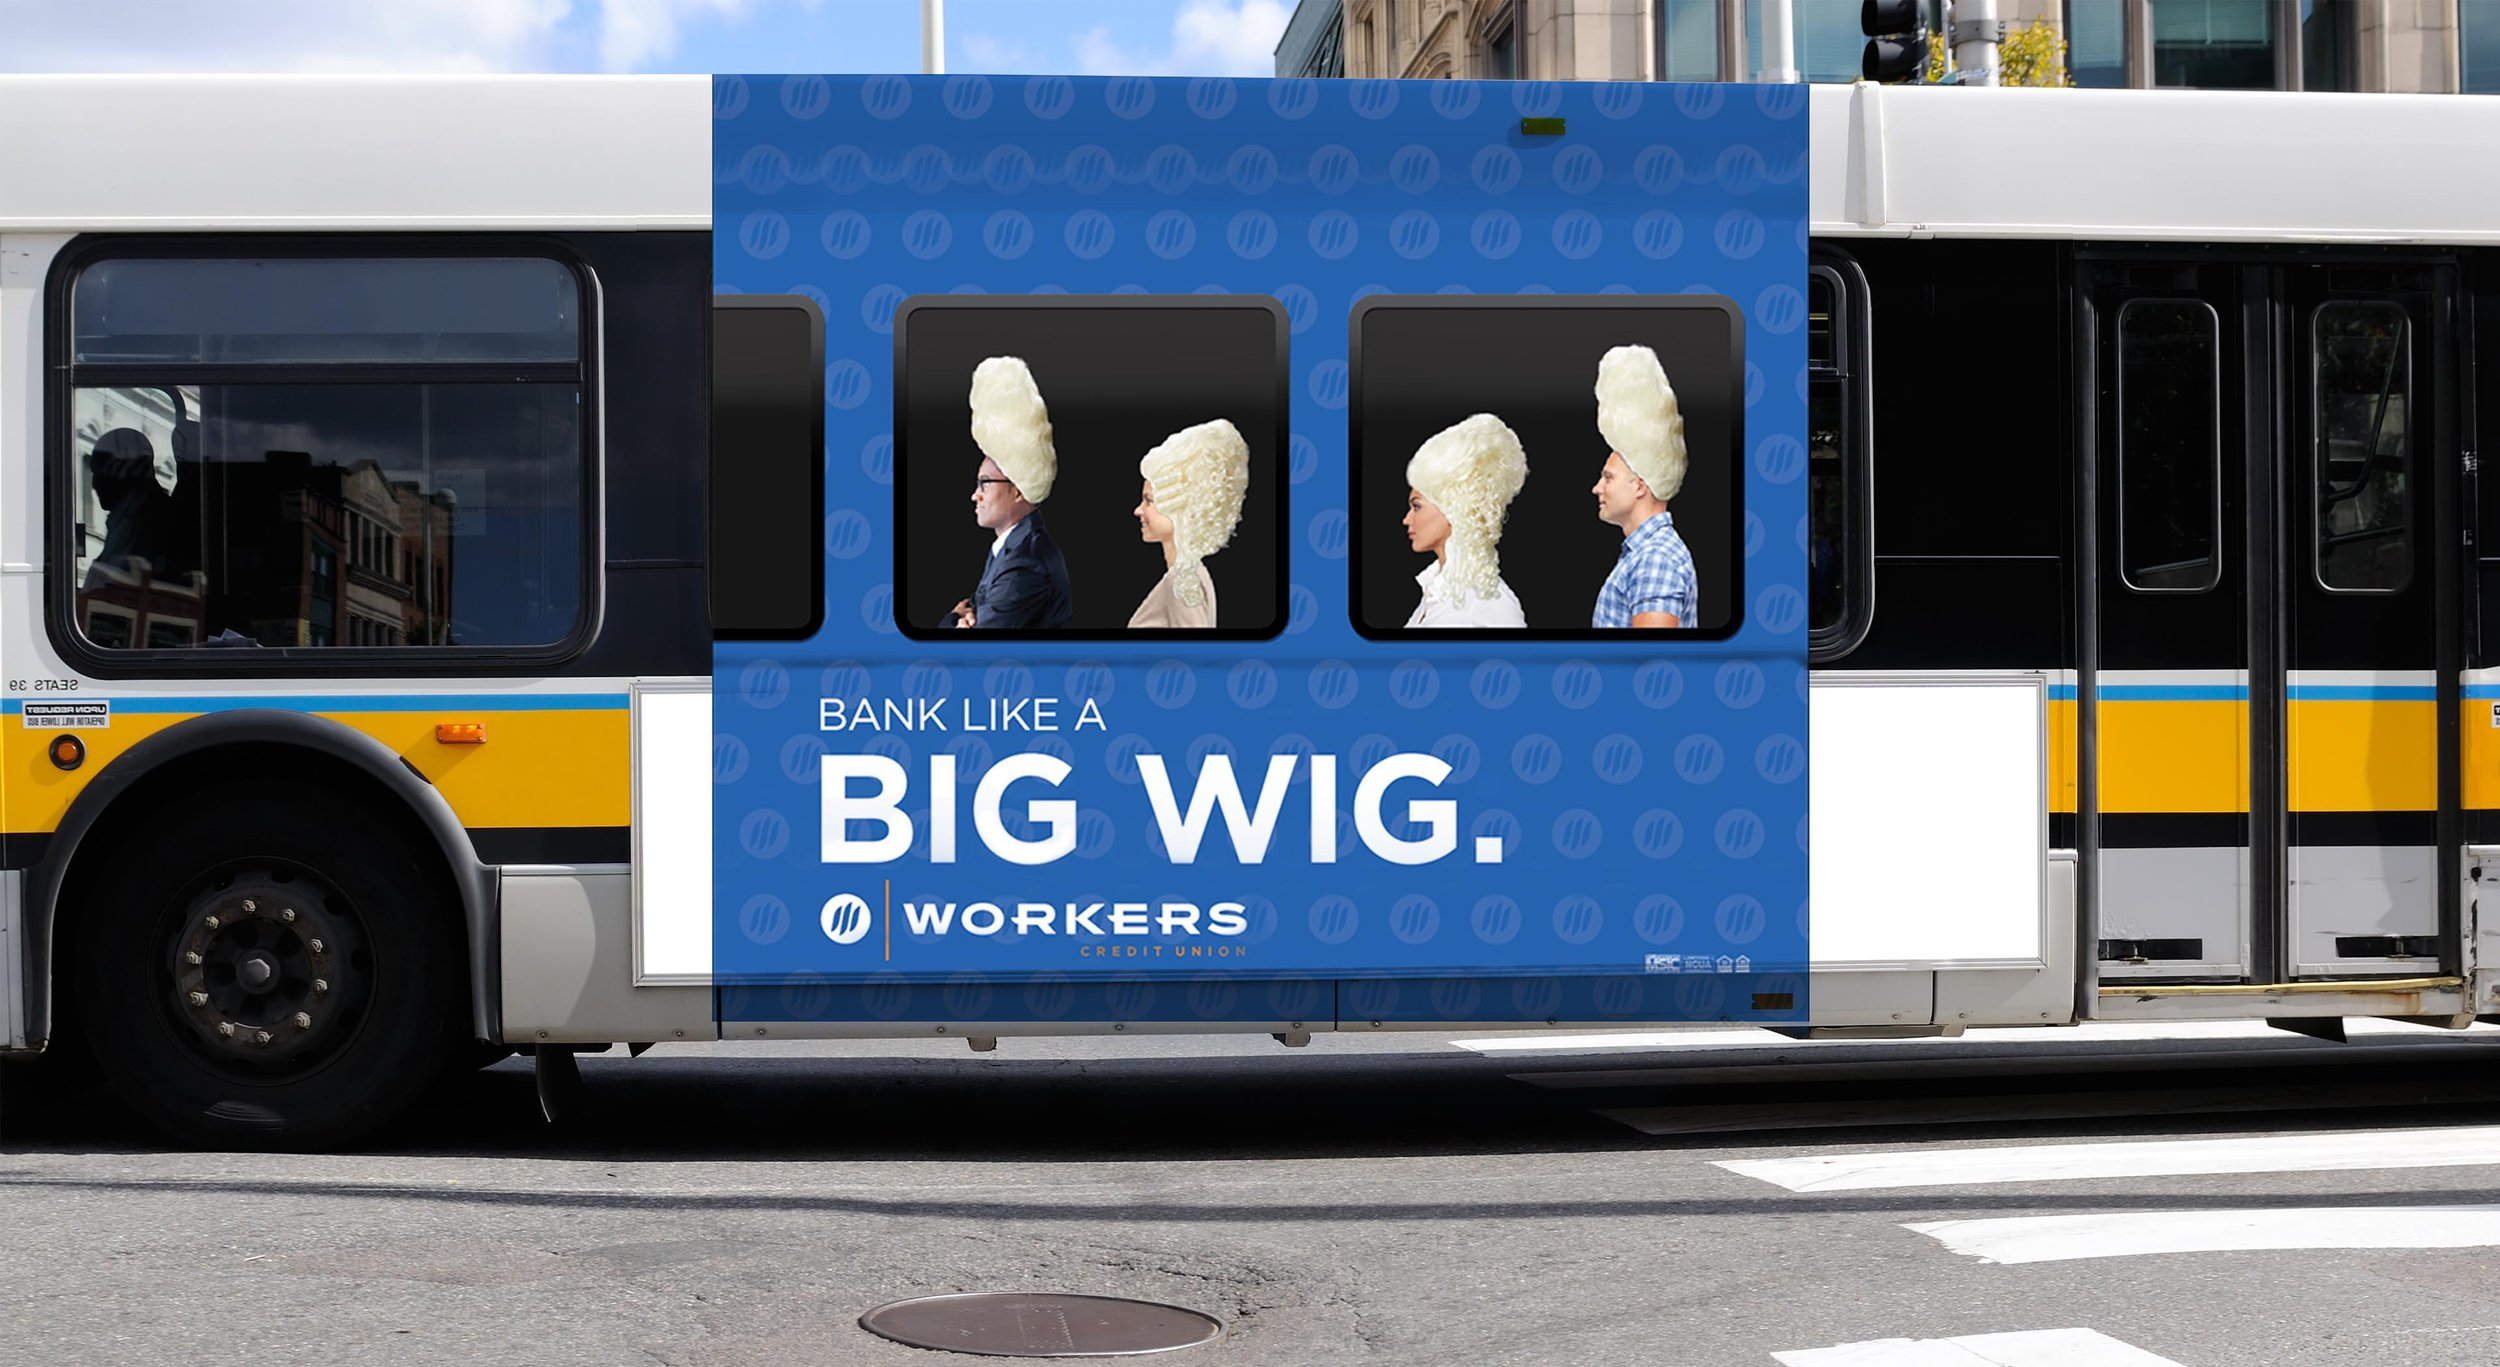 Bus Wrap - Across suburban Boston, riders were treated to an interesting experience. This execution won several regional ADDYs.